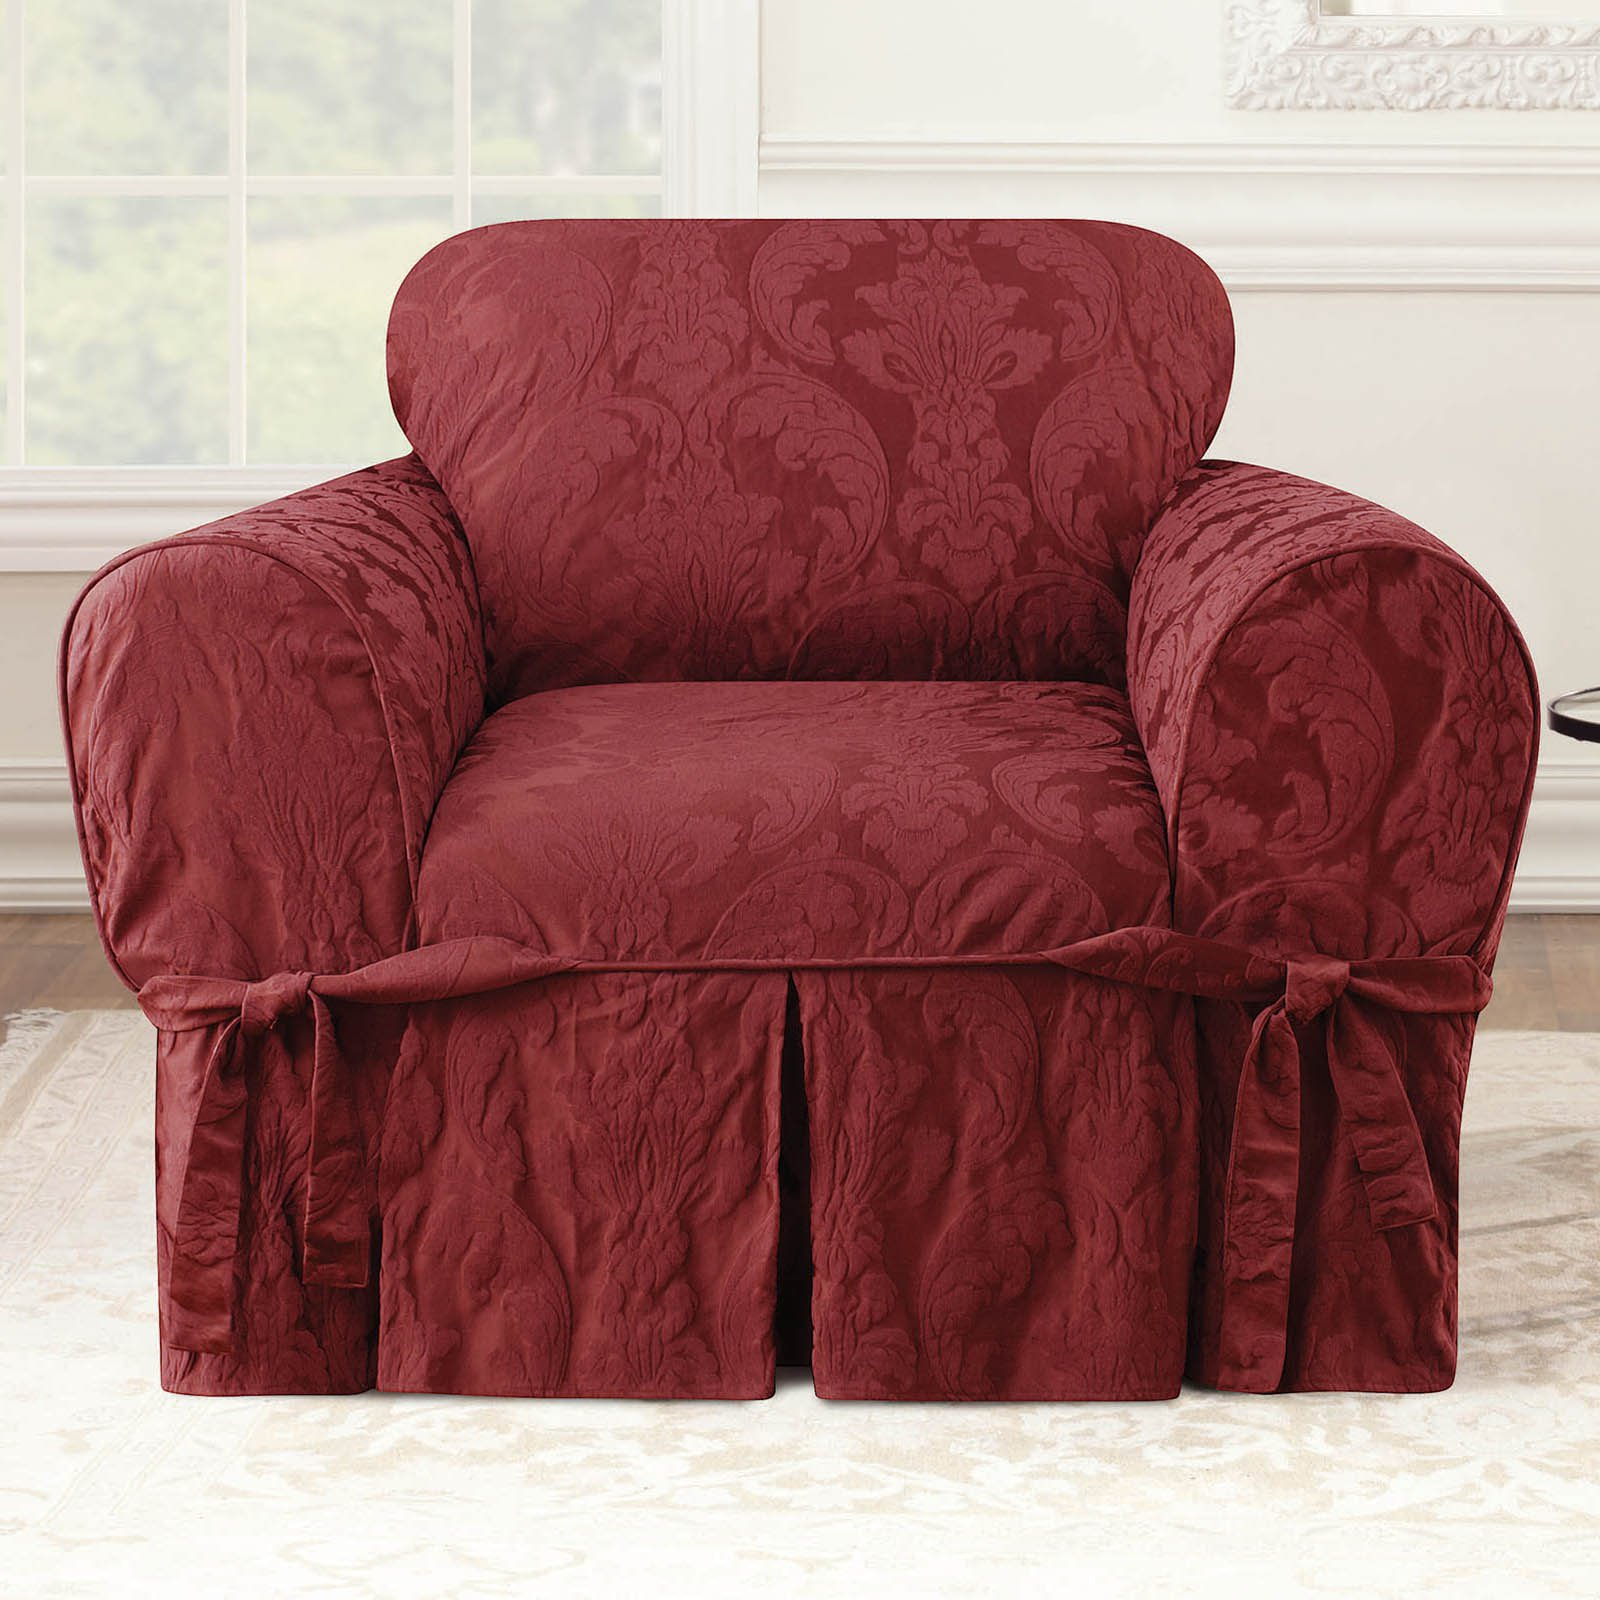 Surefit Chair Covers Sure Fit Matelasse Damask Chair Cover